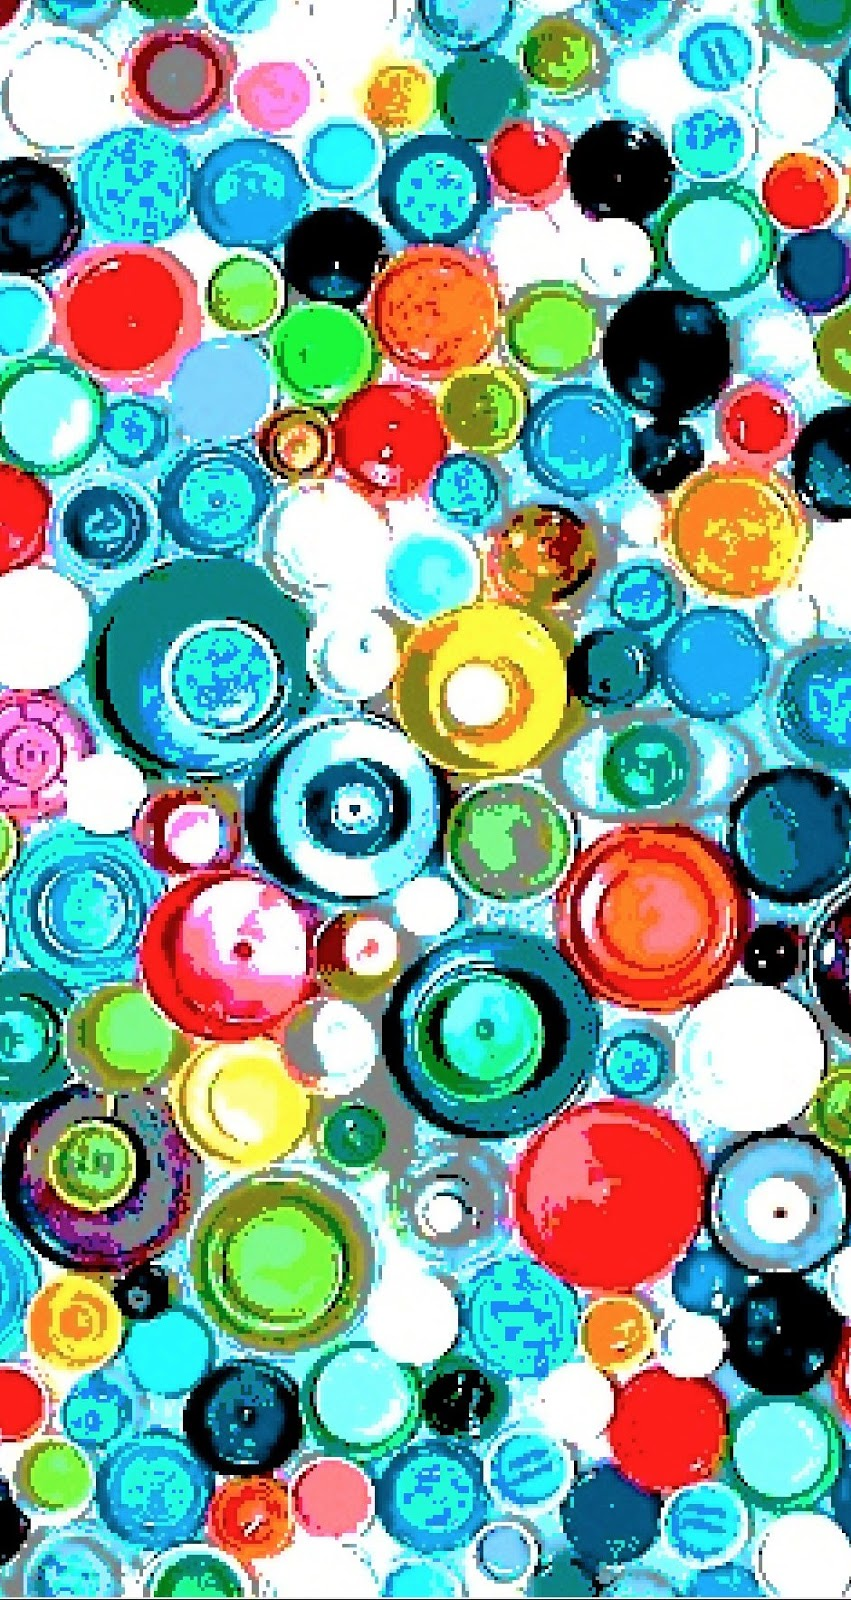 Blukatkraft recycle reuse remake repurpose upcycle - Can you recycle bottle caps ...